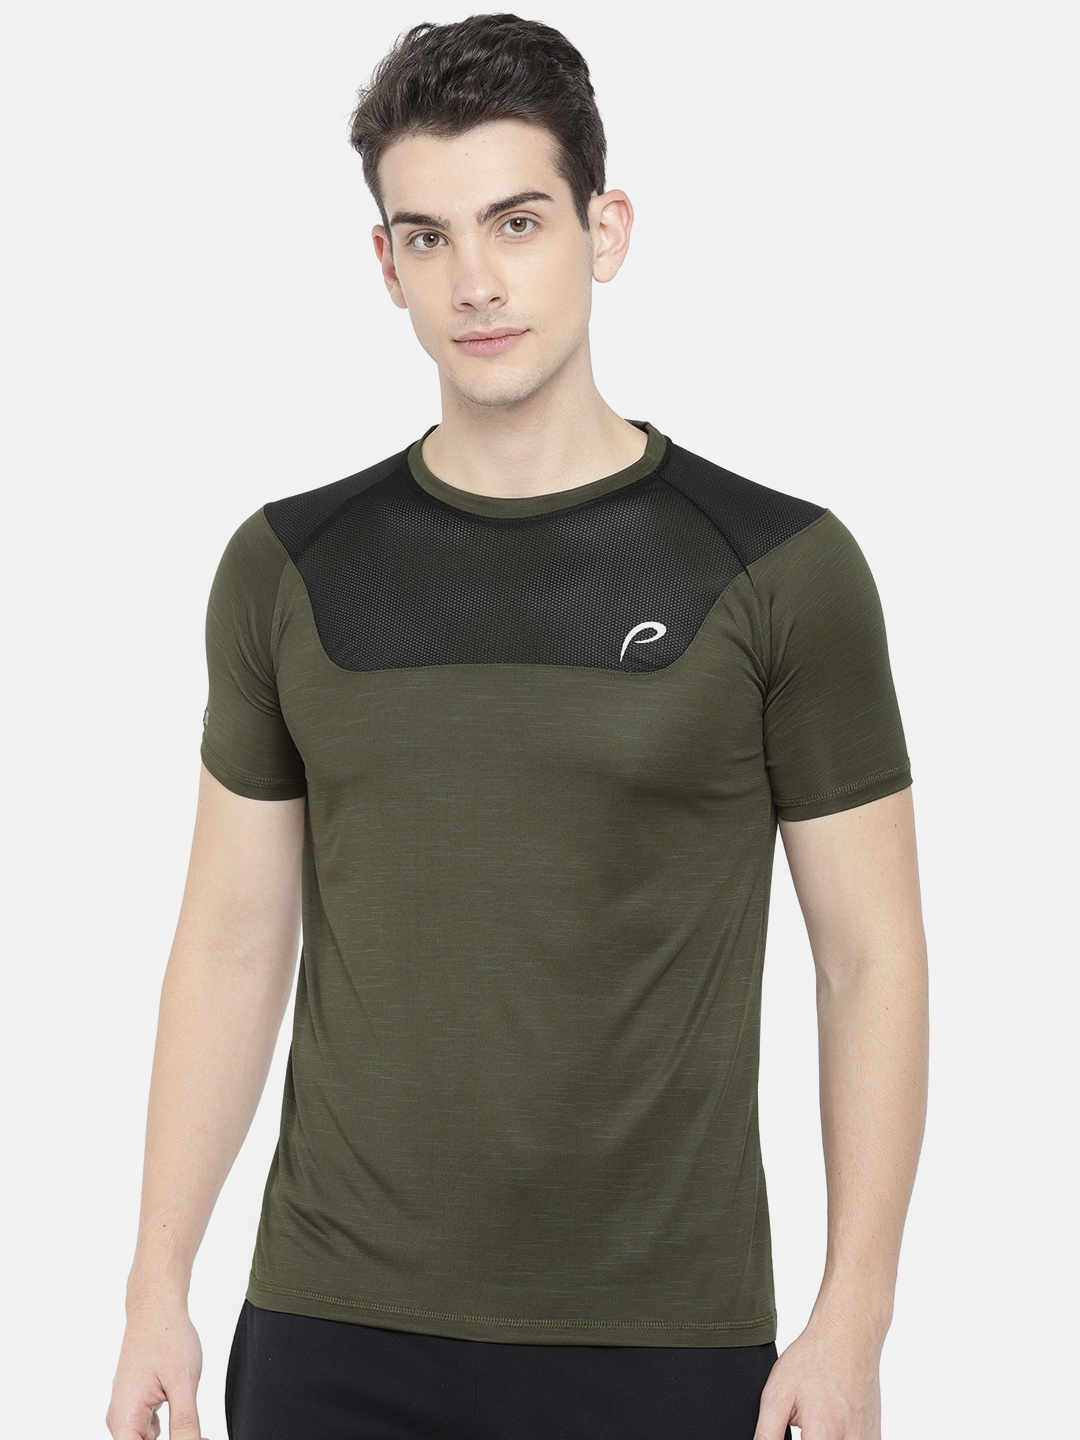 ba6c31a9a74b Buy Proline Active Men Olive Green & Black Solid Round Neck T Shirt -  Tshirts for Men 7233171 | Myntra